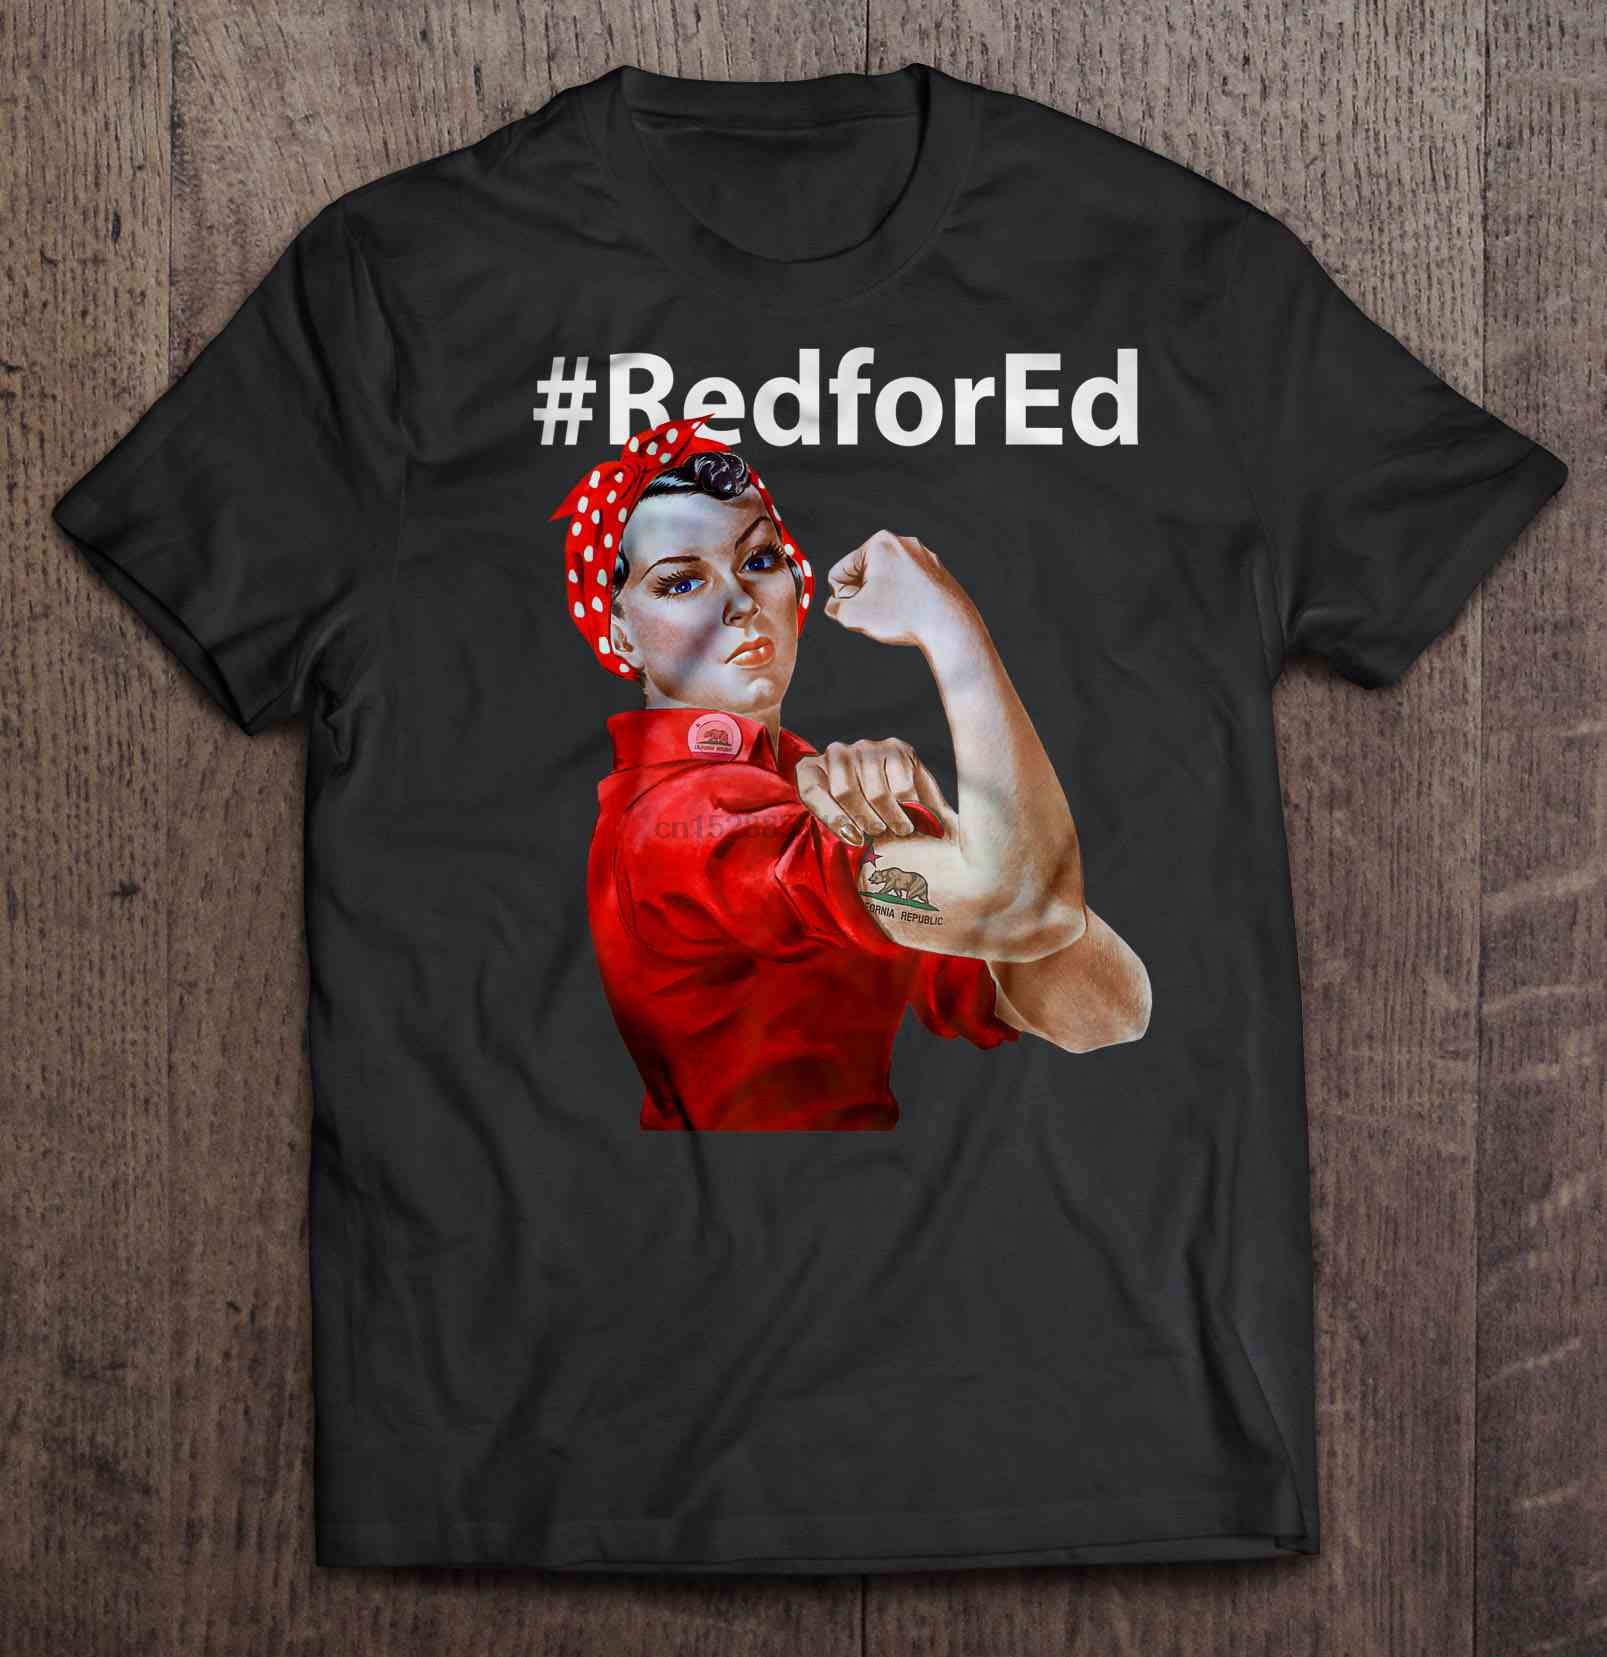 #Redfored California Rosie The Riveter Version T-Shirts